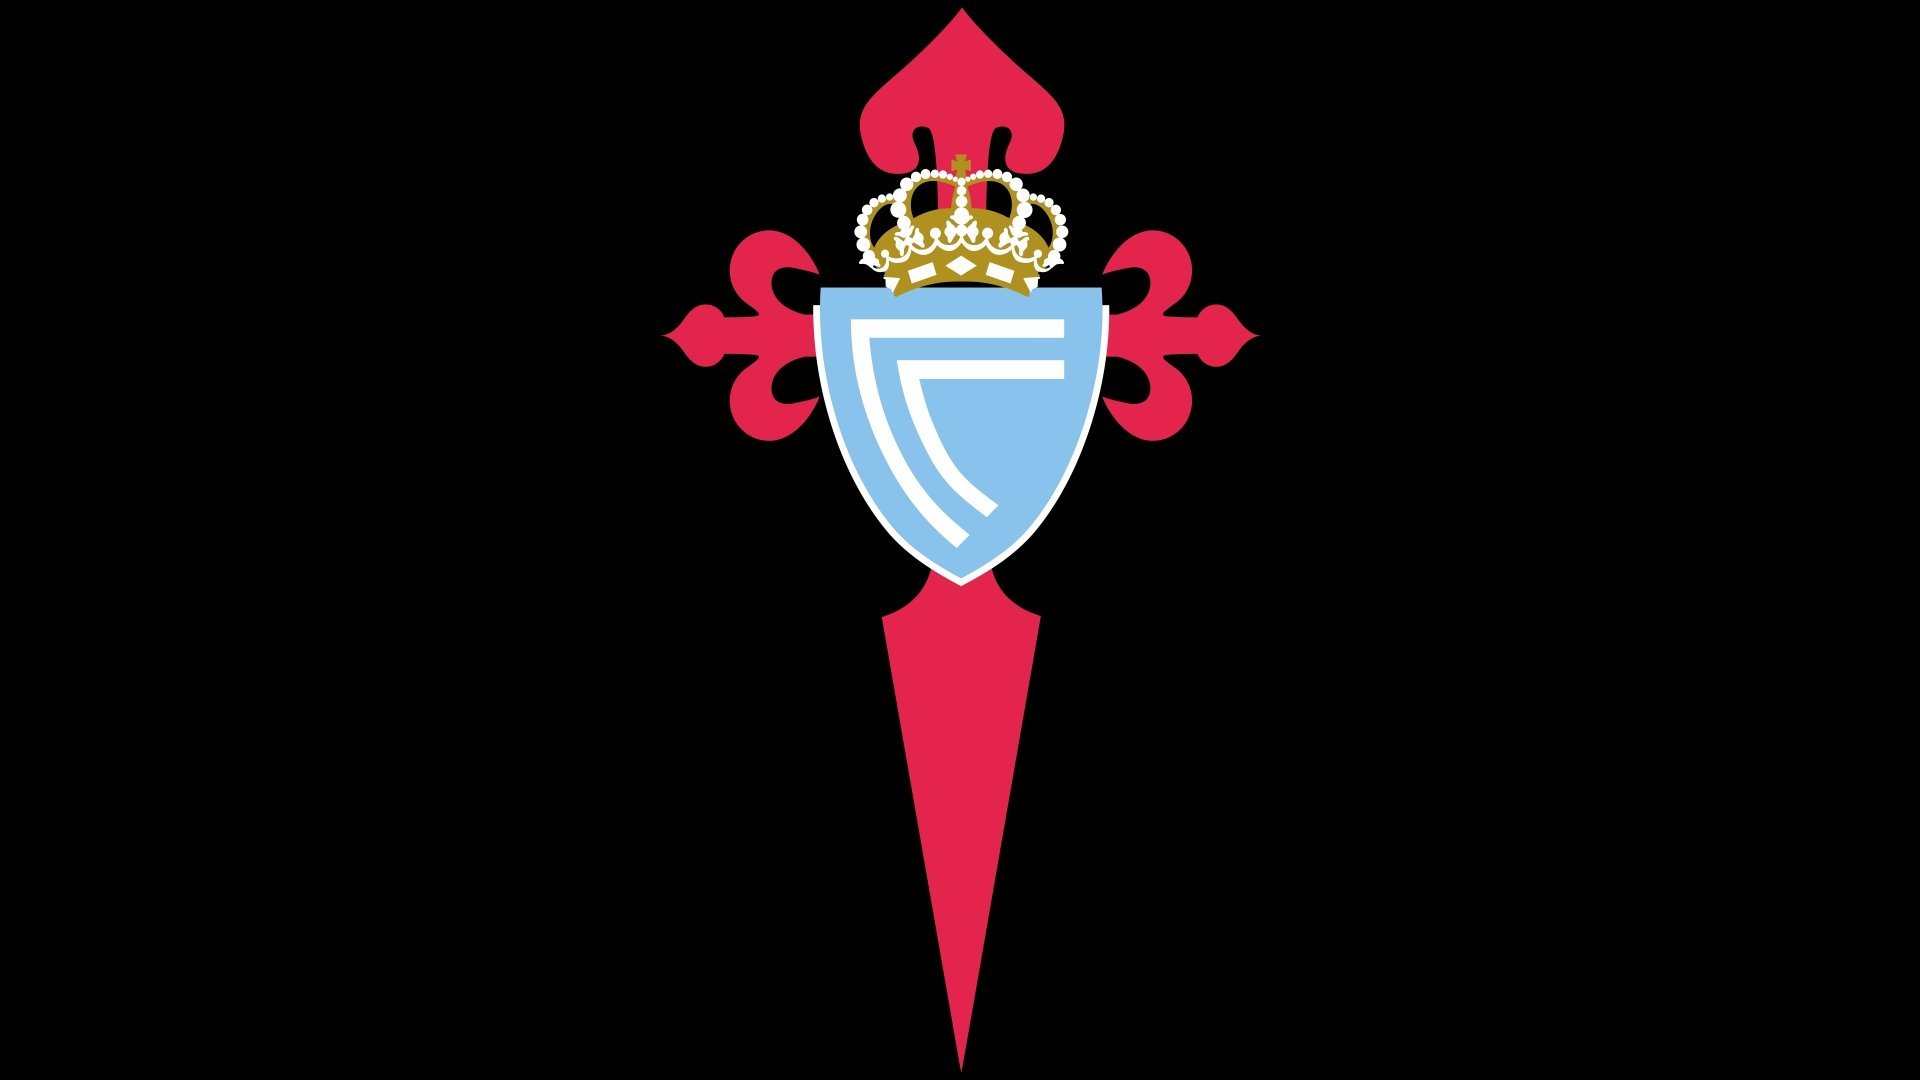 1 Celta de Vigo HD Wallpapers Background Images 1920x1080